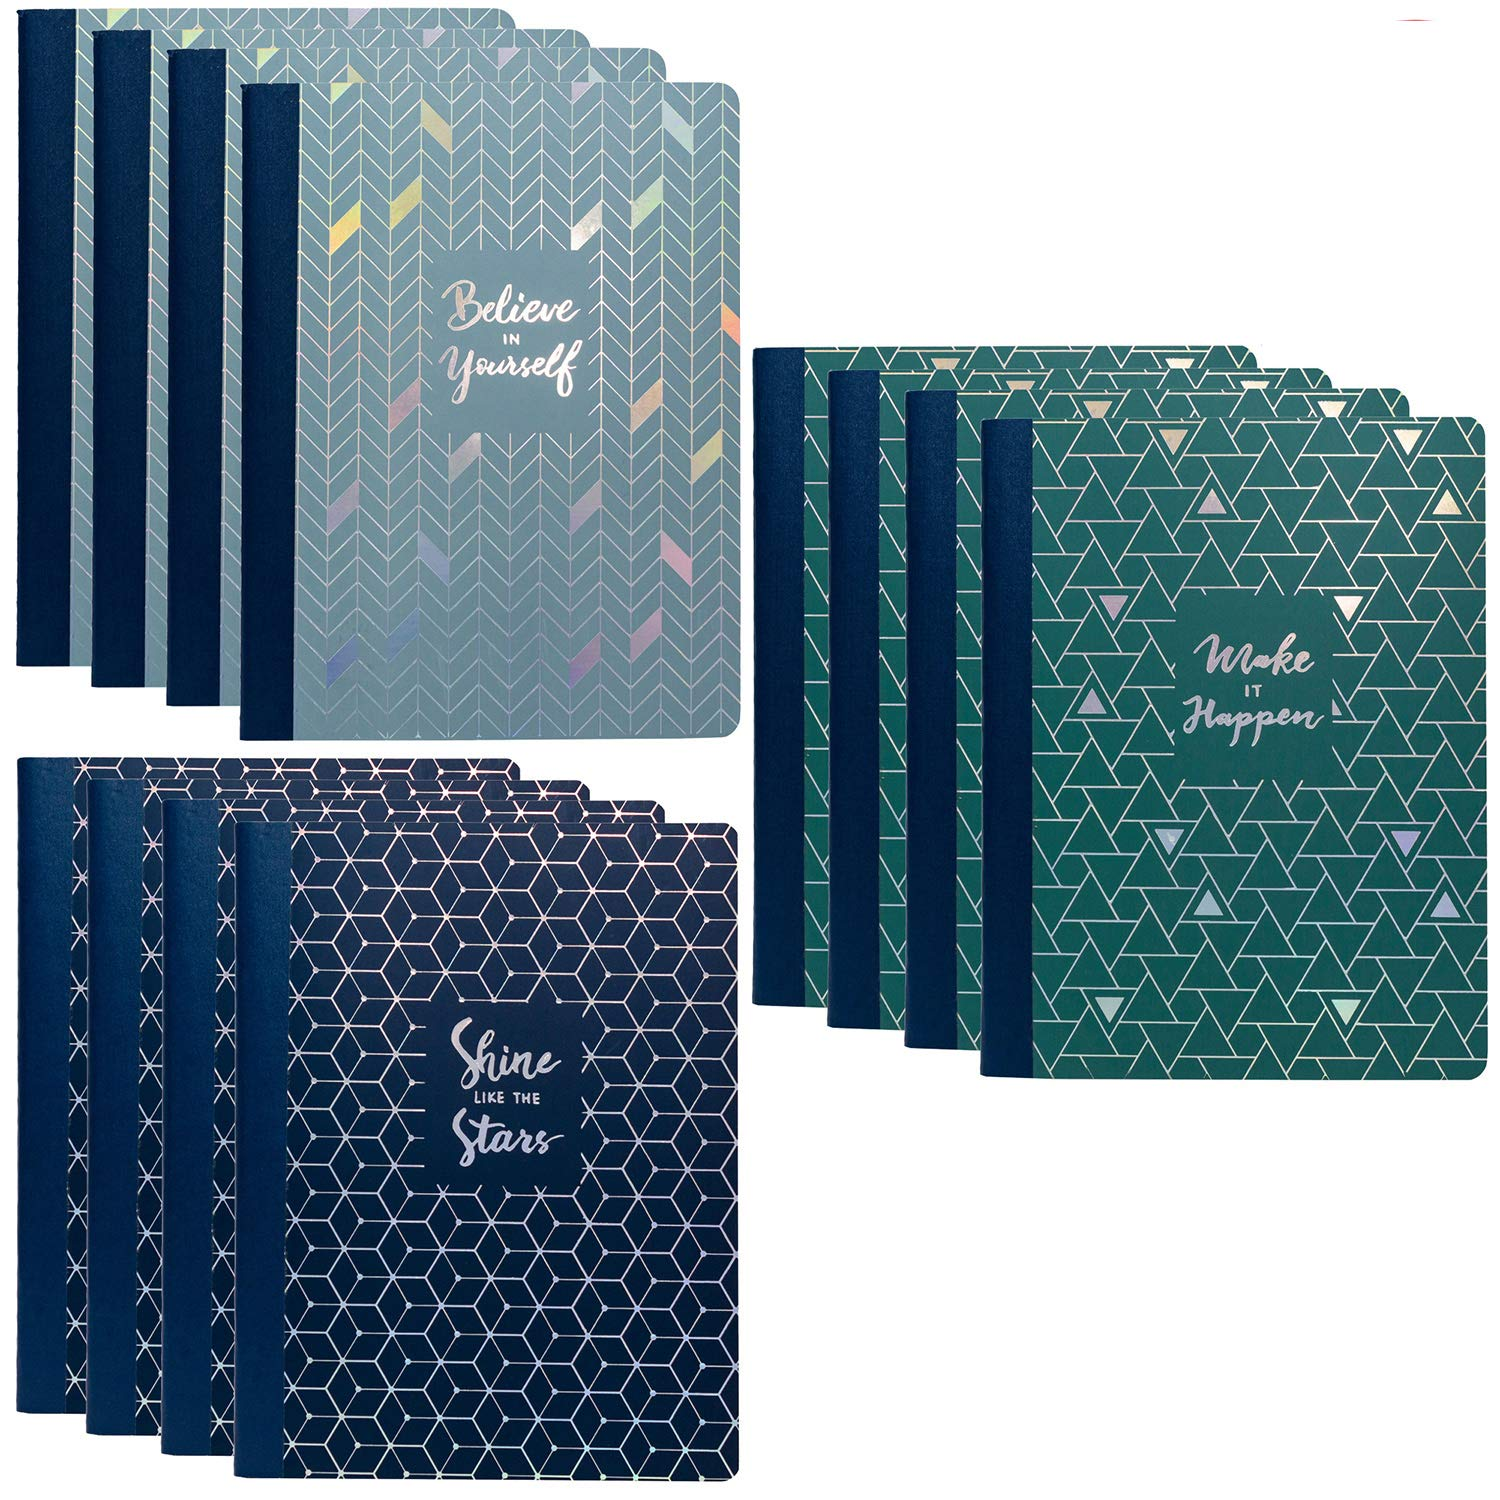 Pukka Pad 12-Pack Composition Notebook 70 Premium 80 GSM Ruled Sheets Glee: Lt Blue Dk Blue Green by Pukka Pad